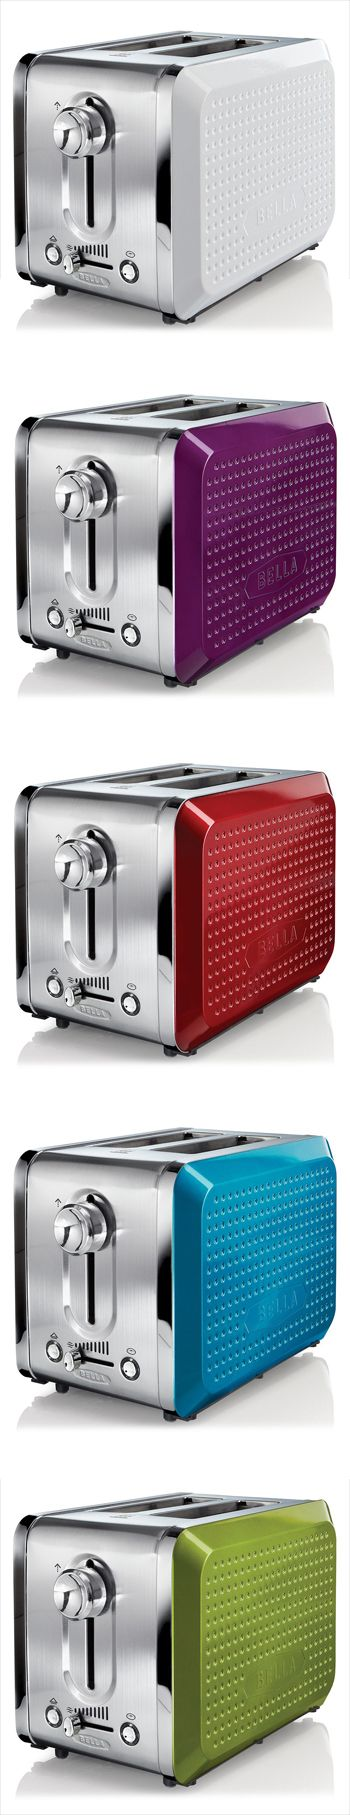 A toaster you'll want to keep out on the counter. #Kohls